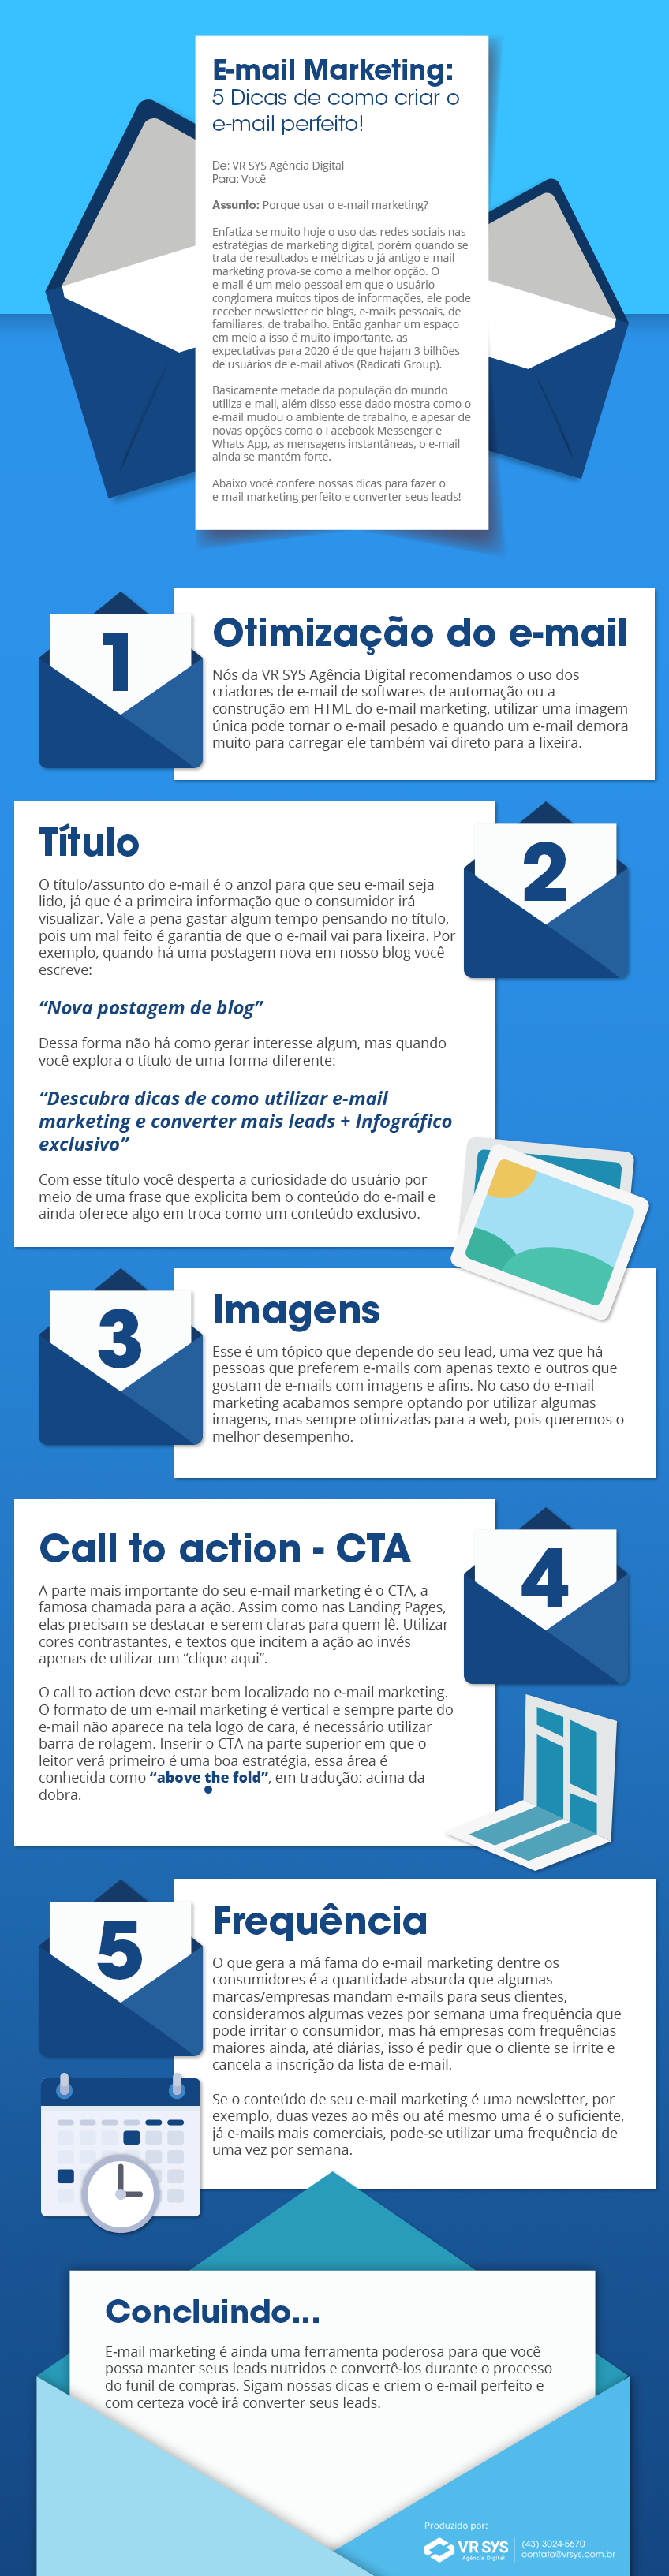 e mail marketing por que usar e como usar infografico